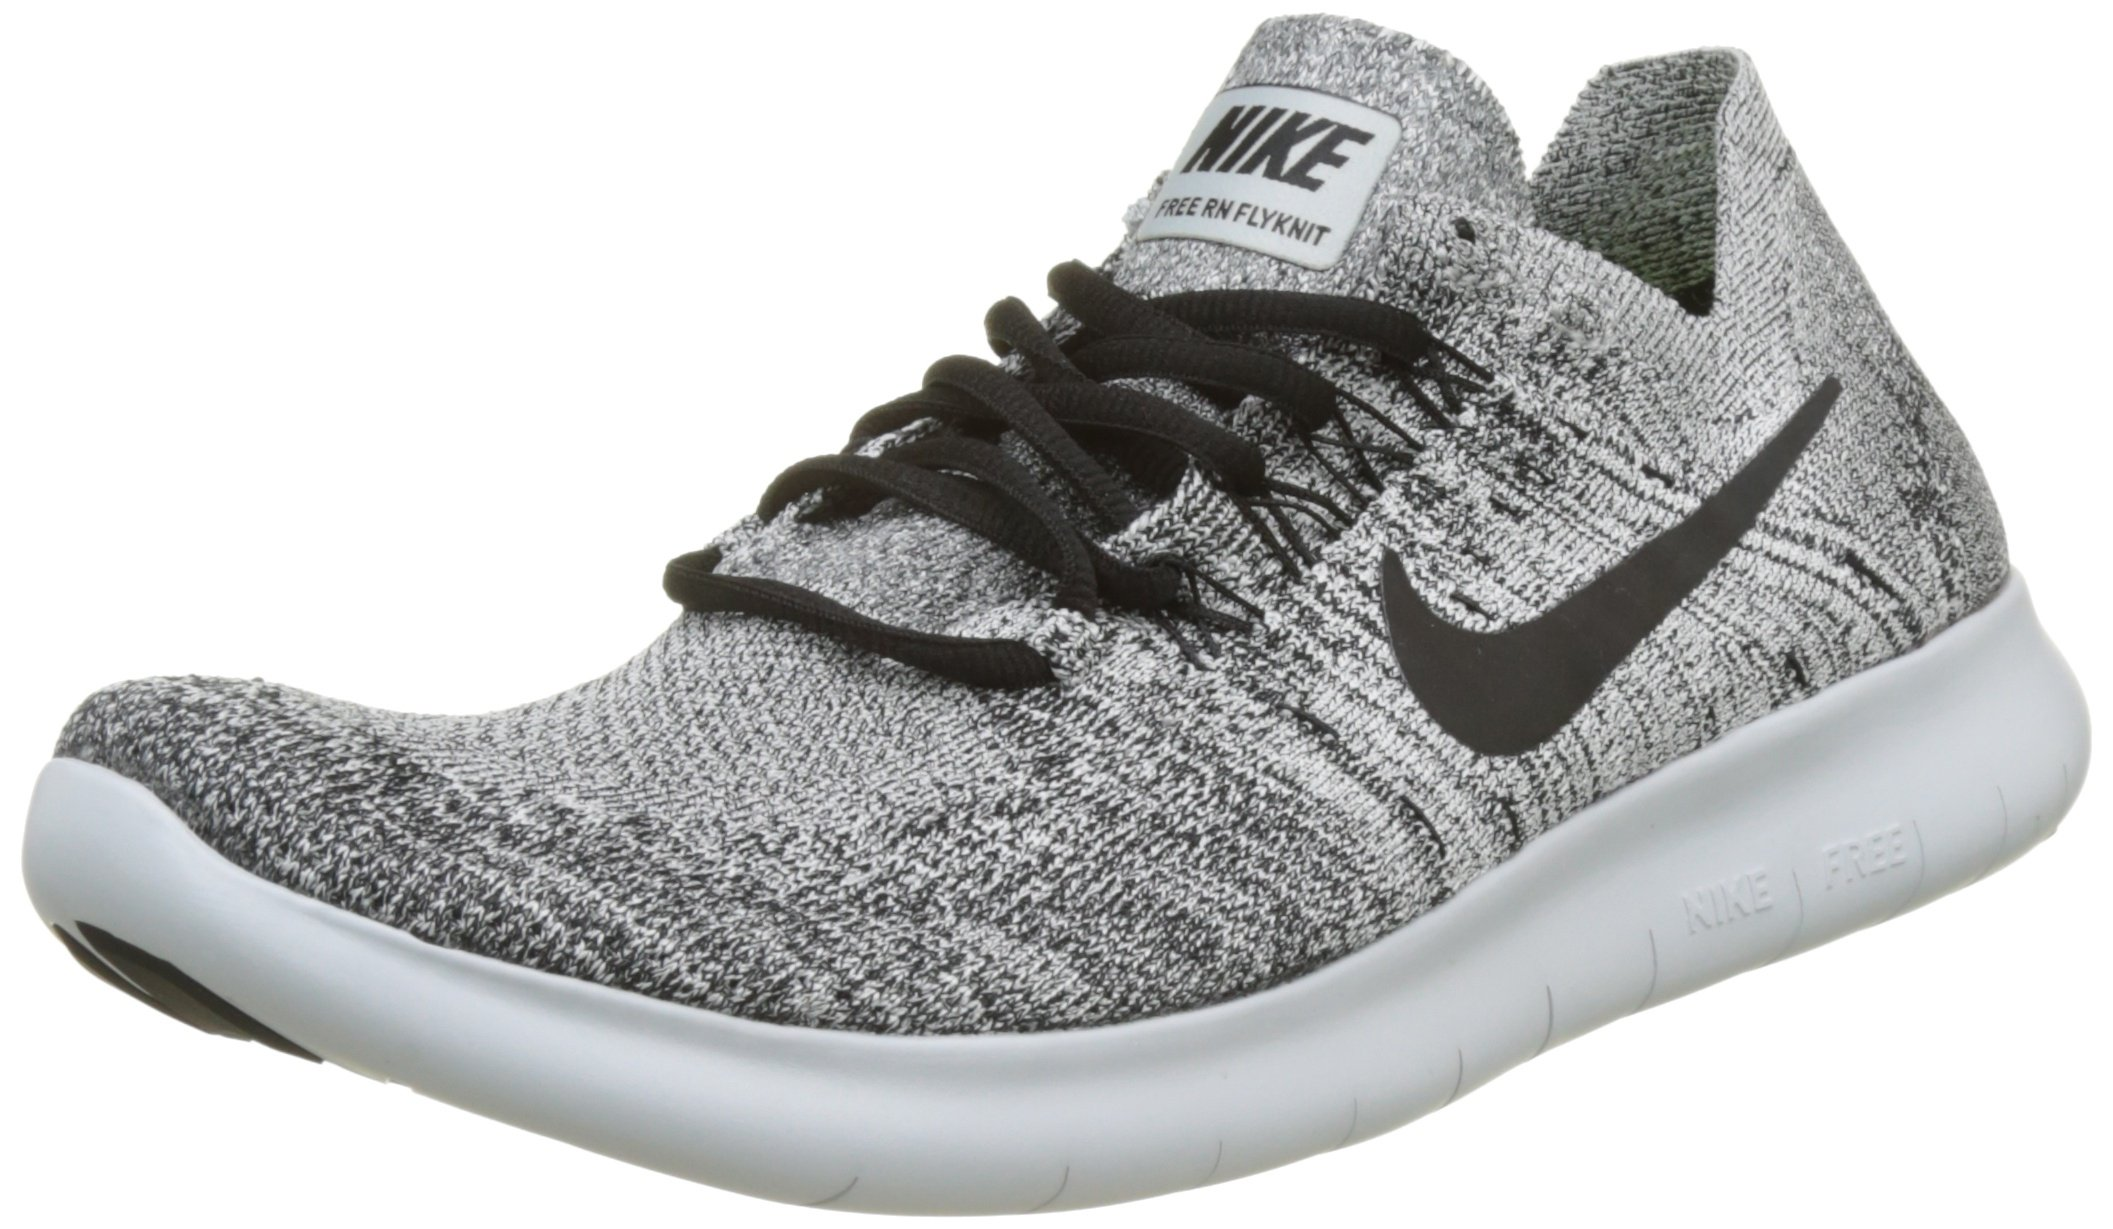 725428c9195b2 Galleon - Nike Mens Free RN Flyknit 2017 Running Shoes White Black-Stealth-Pure  Platinum 880843-101 Size 9.5